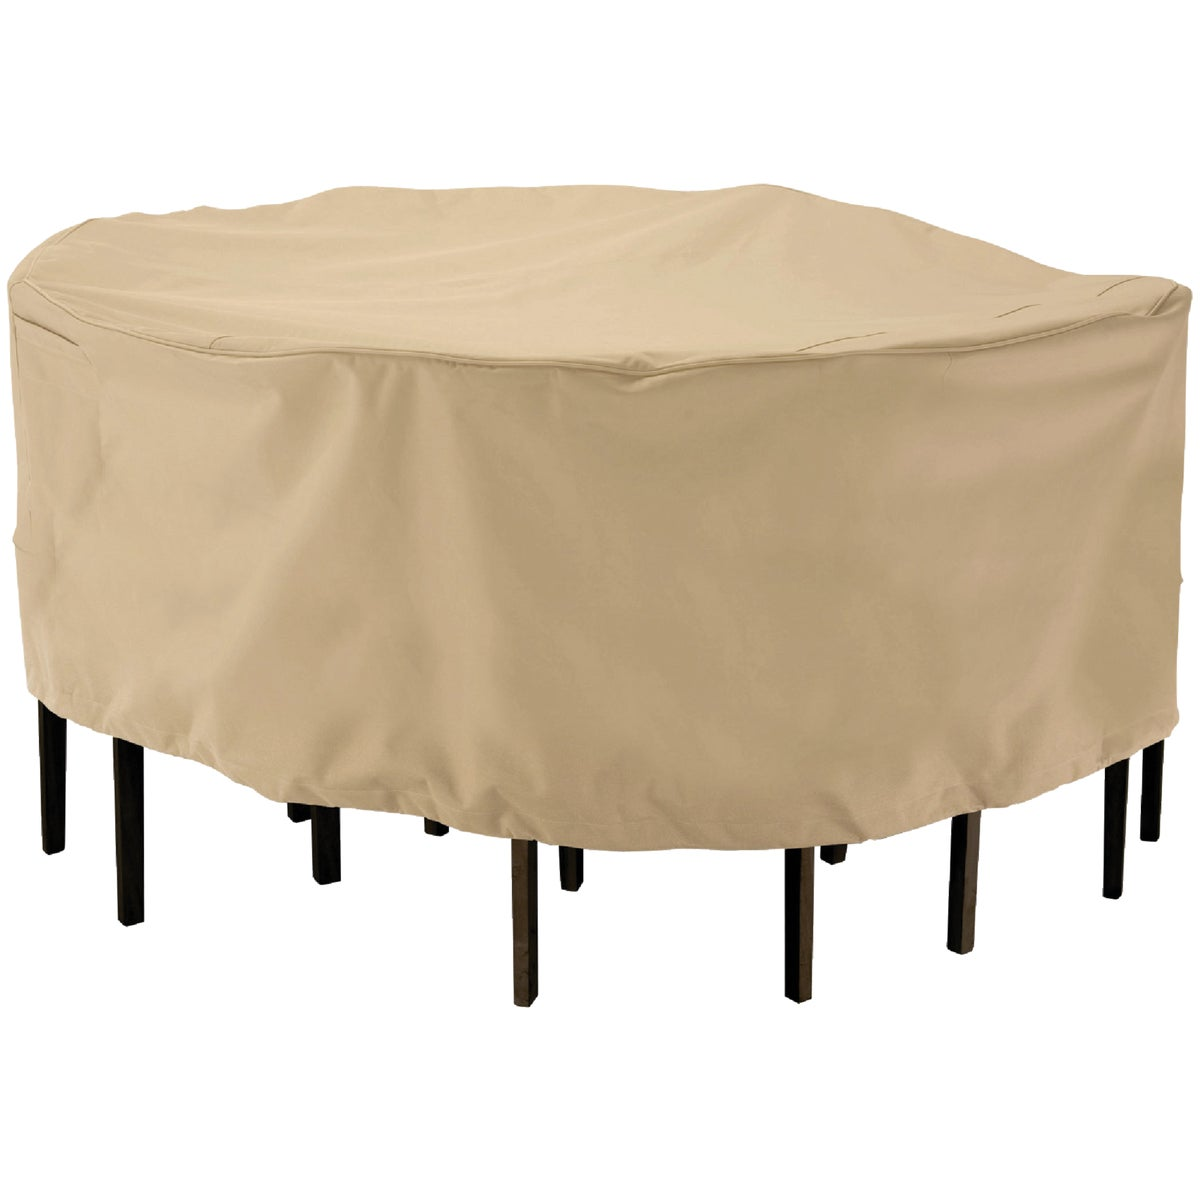 L RND TABLE/CHAIR COVER - 58222 by Classic Accessories